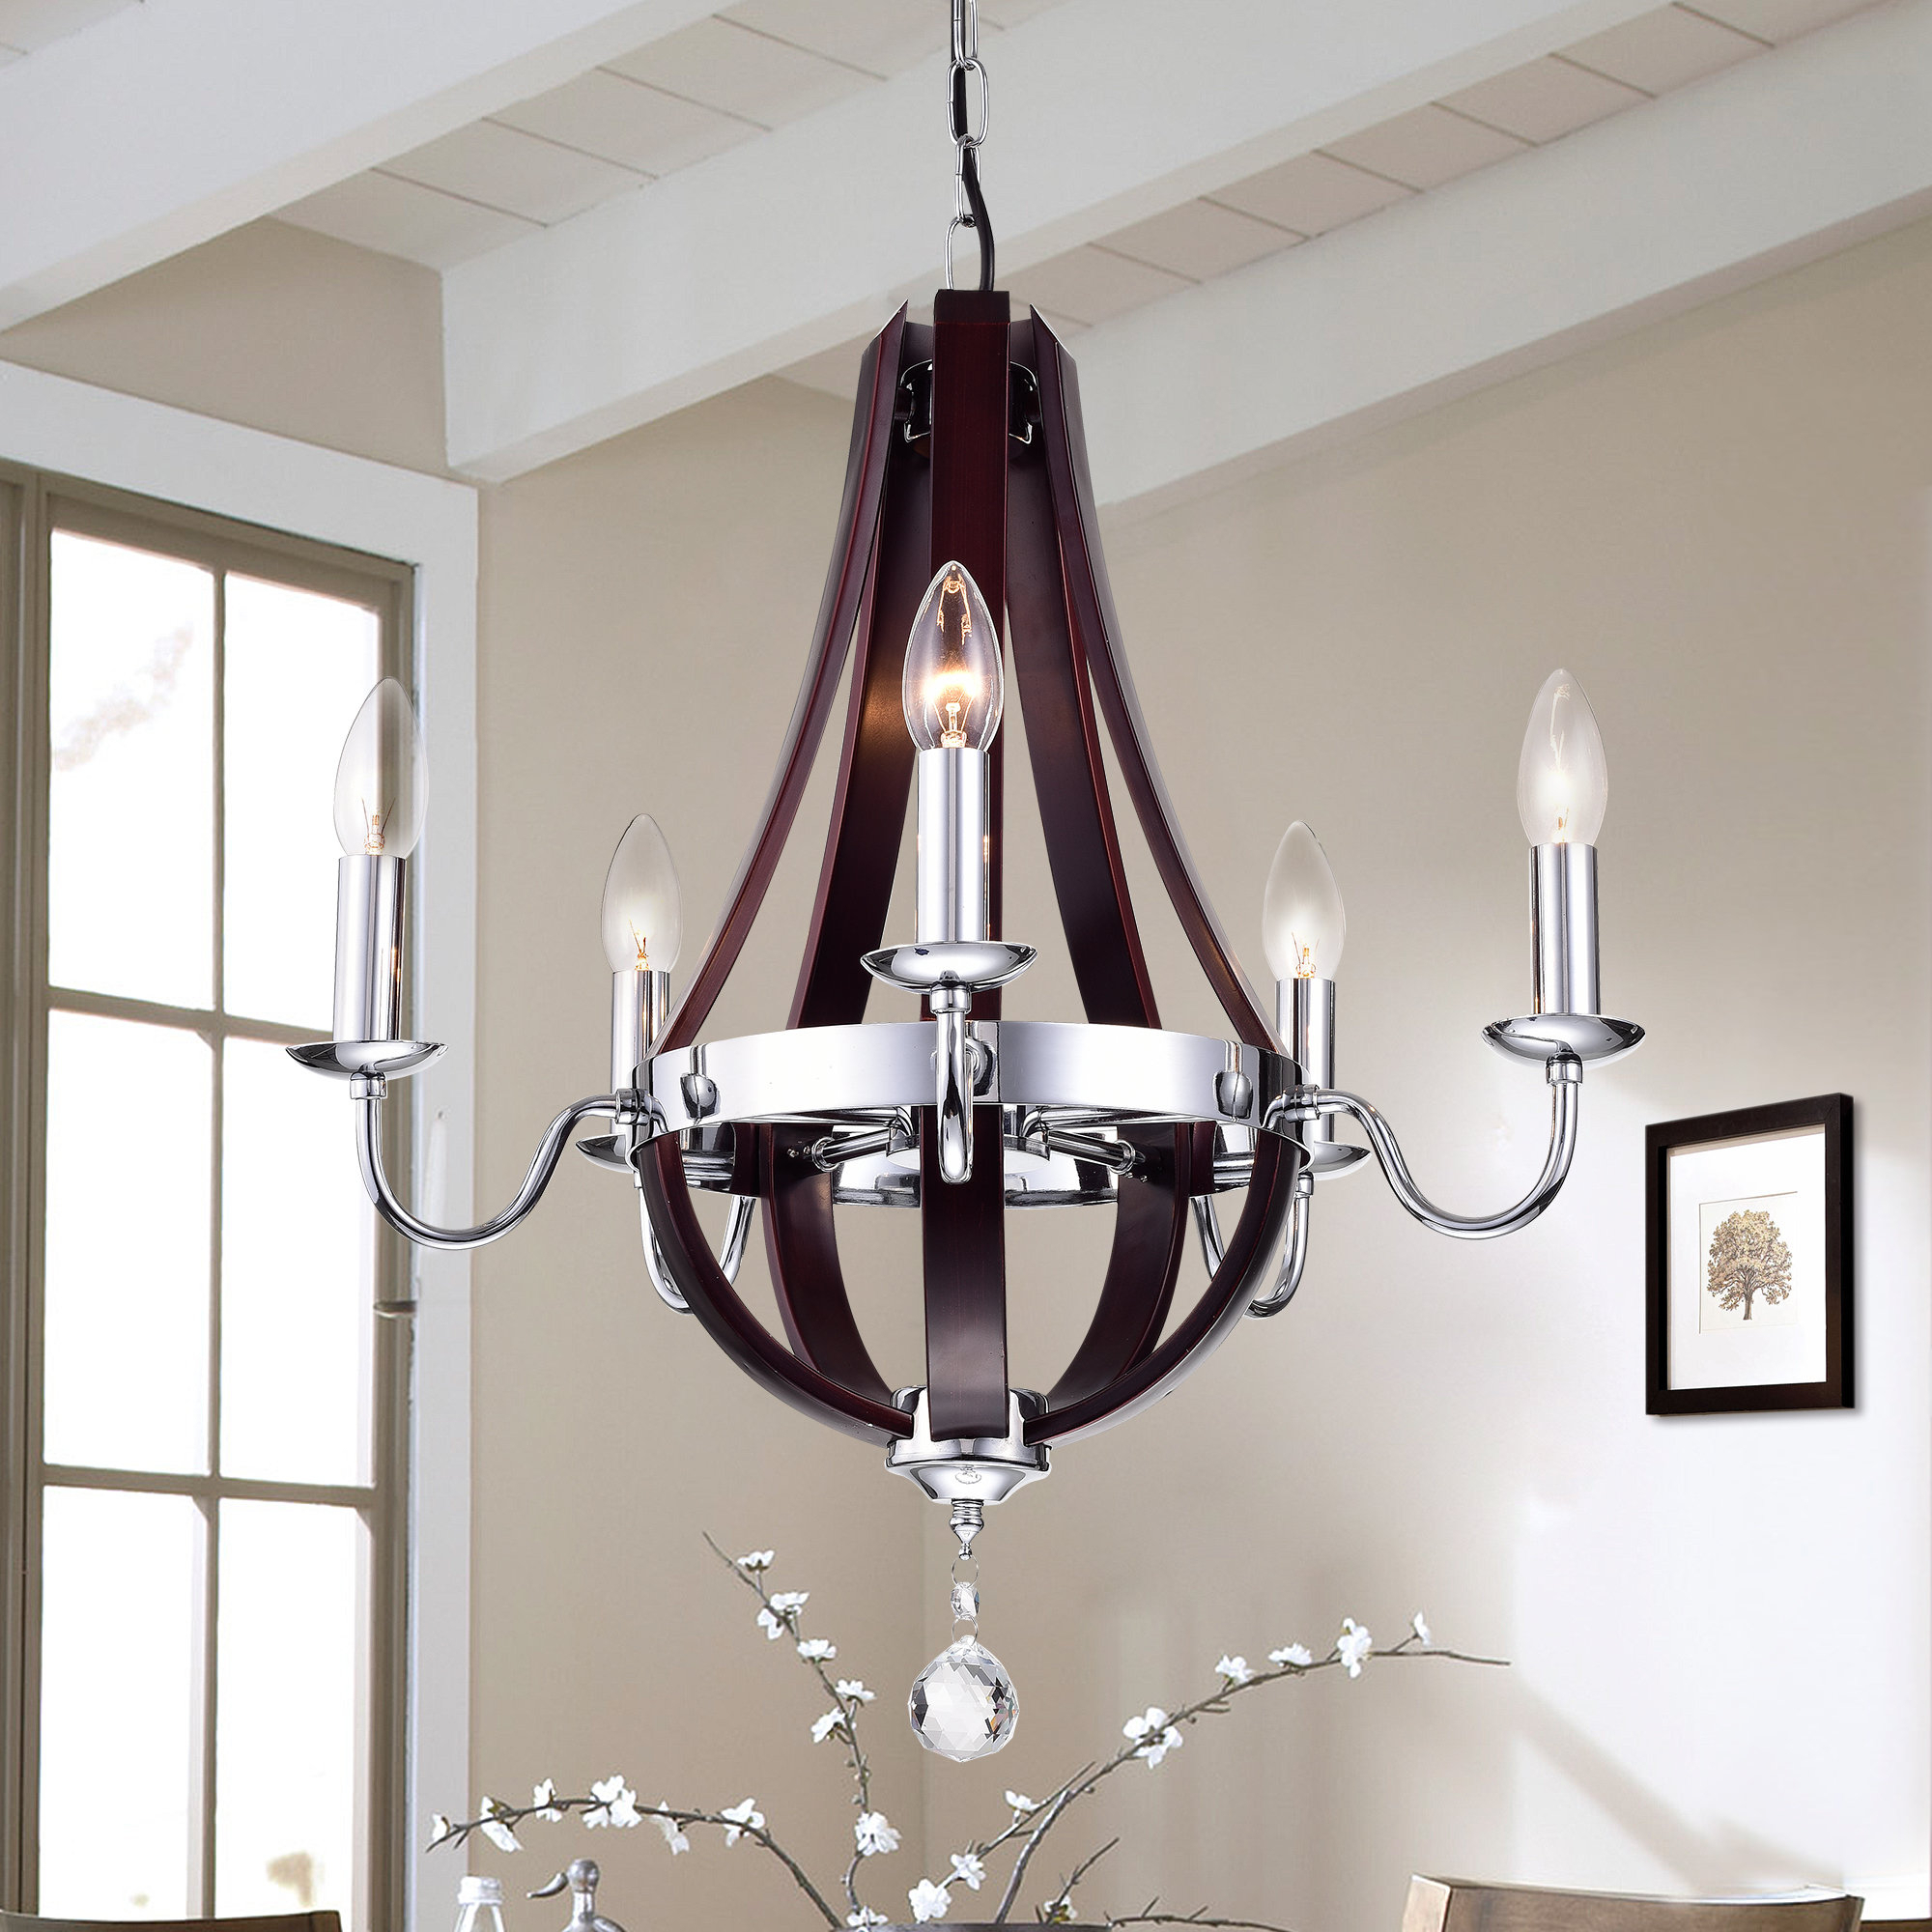 Kyrsten 5 Light Empire Chandelier With Regard To Most Recently Released Kenna 5 Light Empire Chandeliers (View 6 of 25)